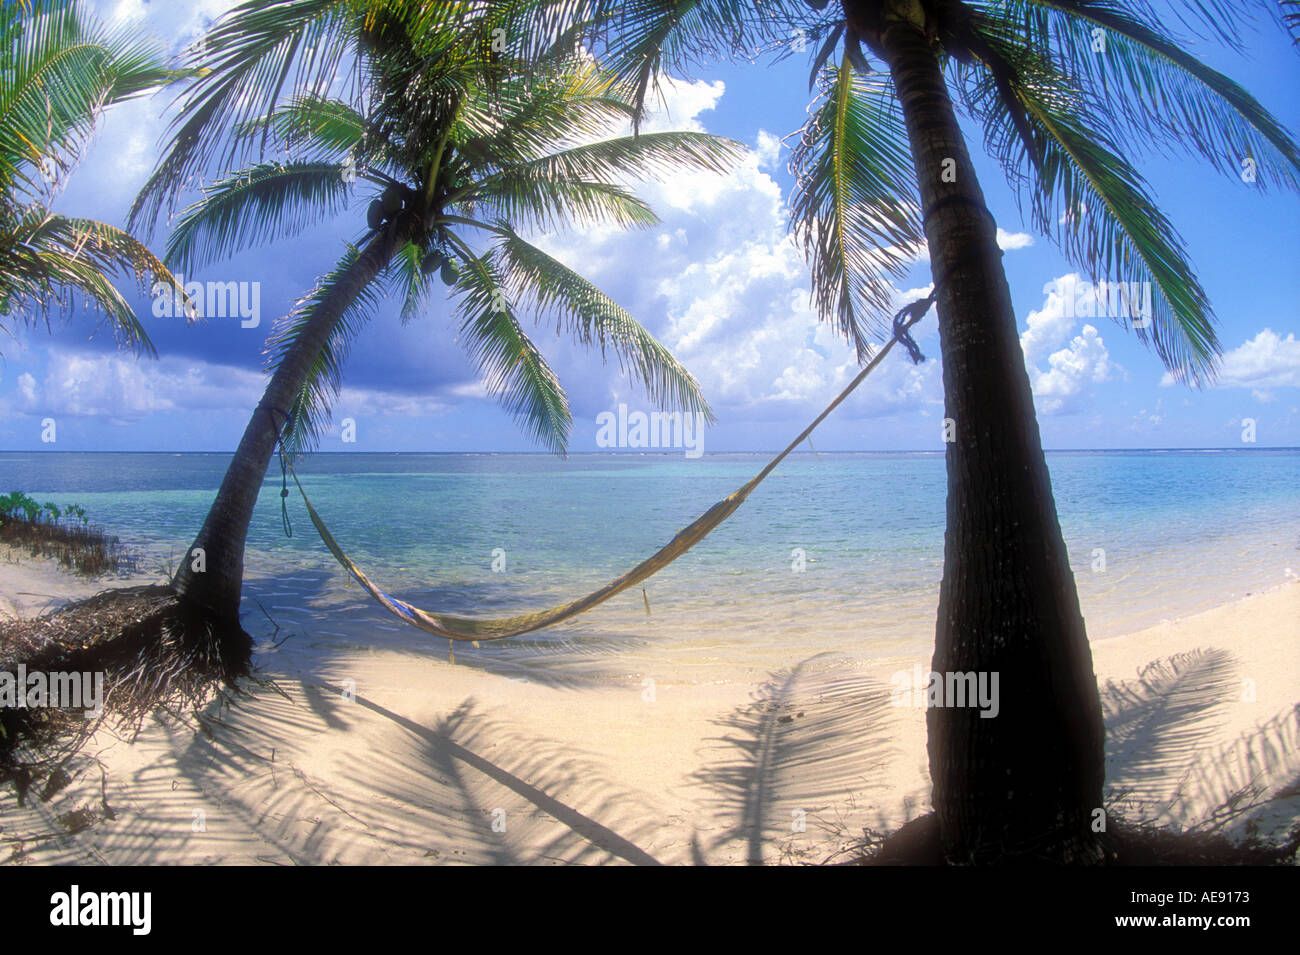 Hammock swinging between two coconut palm trees in Belize Caribbean - Stock Image